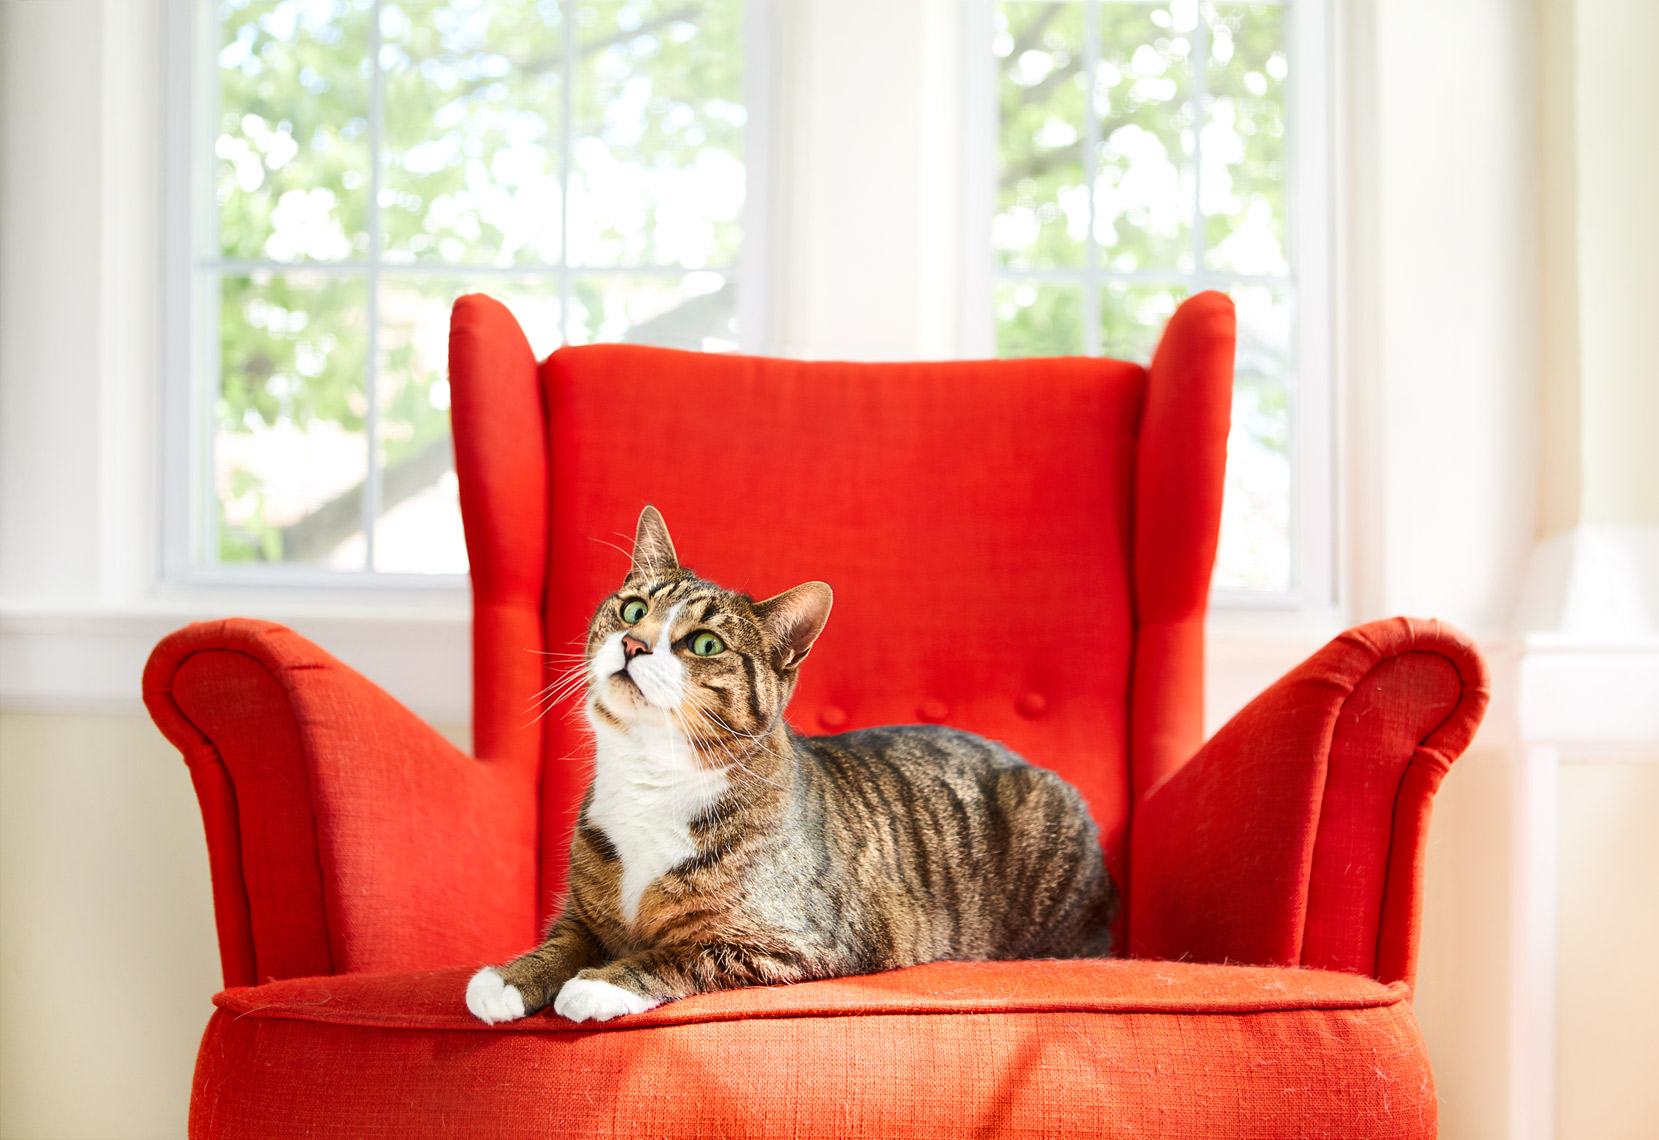 Cat on red chair